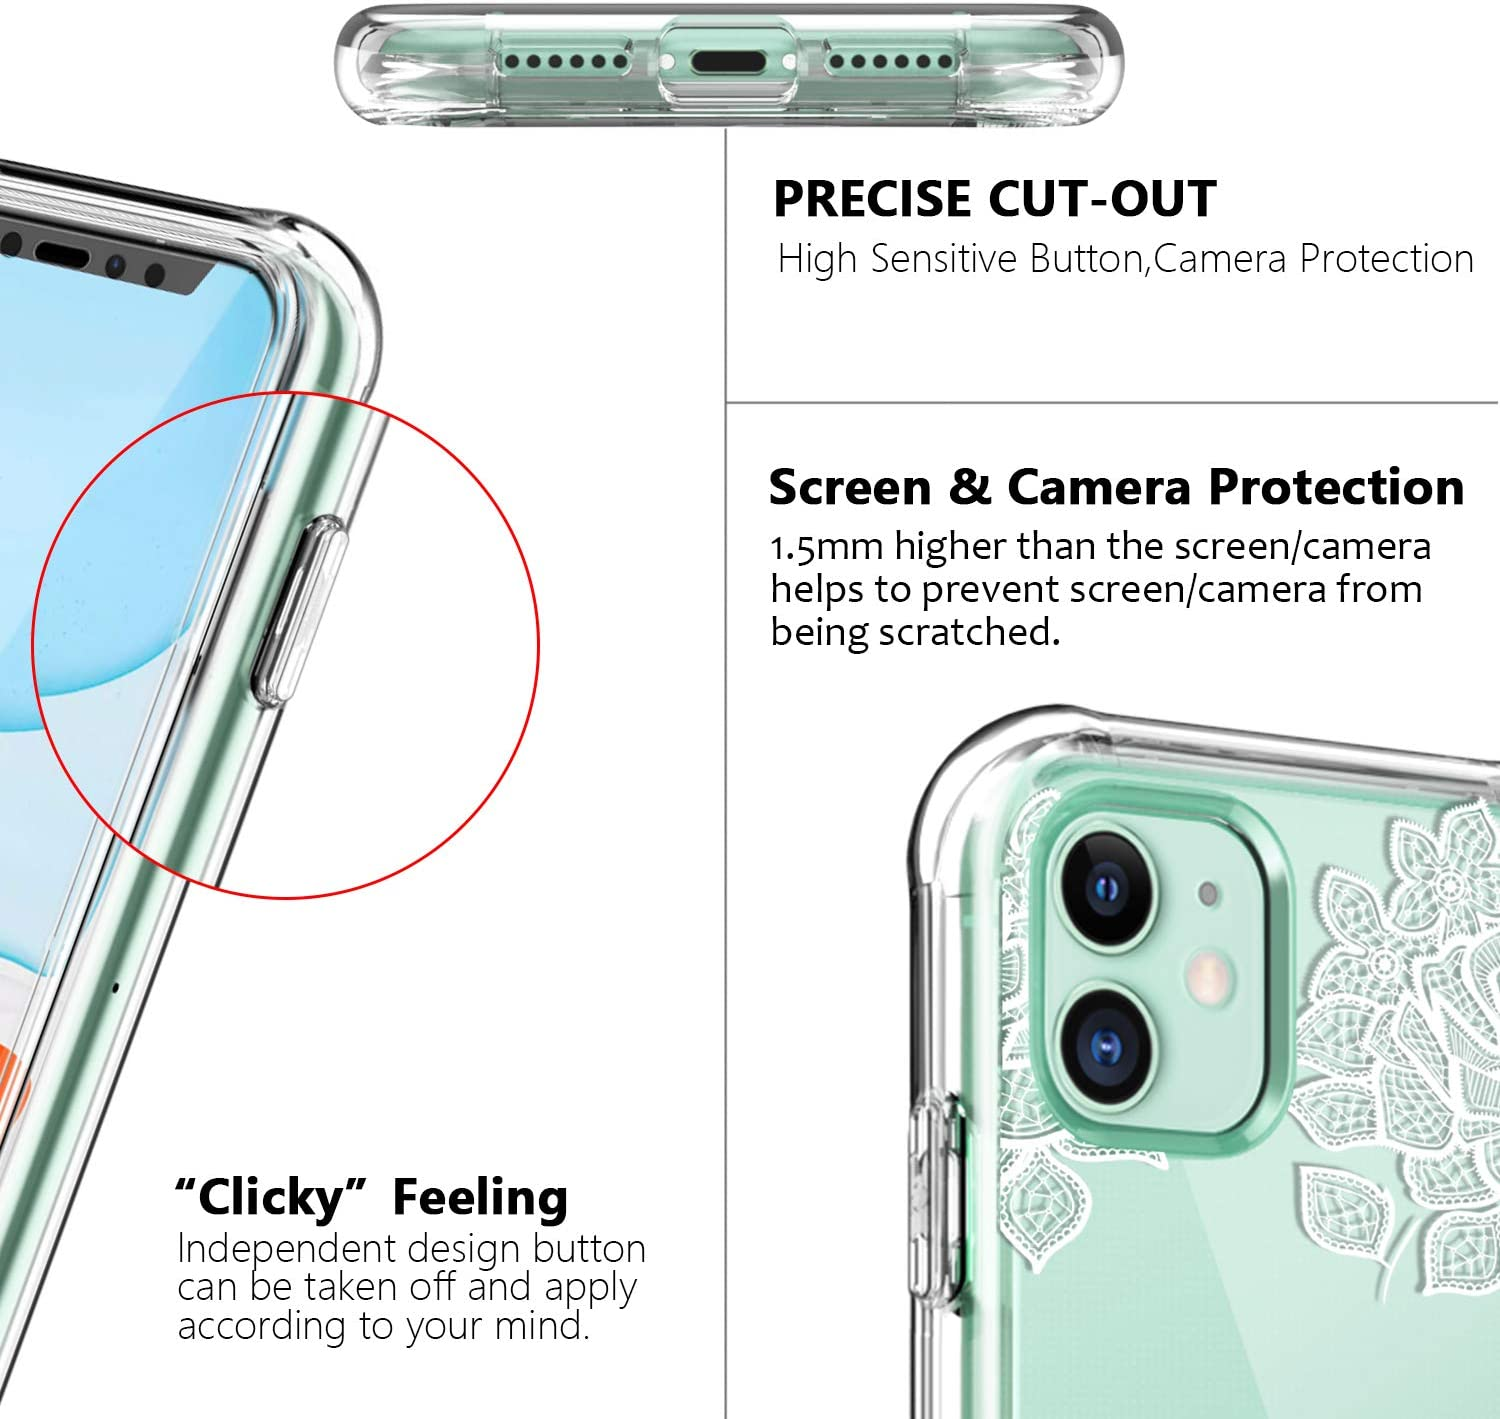 SKYLMW iPhone 11 Case 2019 6.1 inch Clear Built in Screen Protector Full Body Shockproof Dual Layer Protective Hard Plastic Soft TPU with Phone Cover with Fashion Design for Women Girls,Lace Flowers